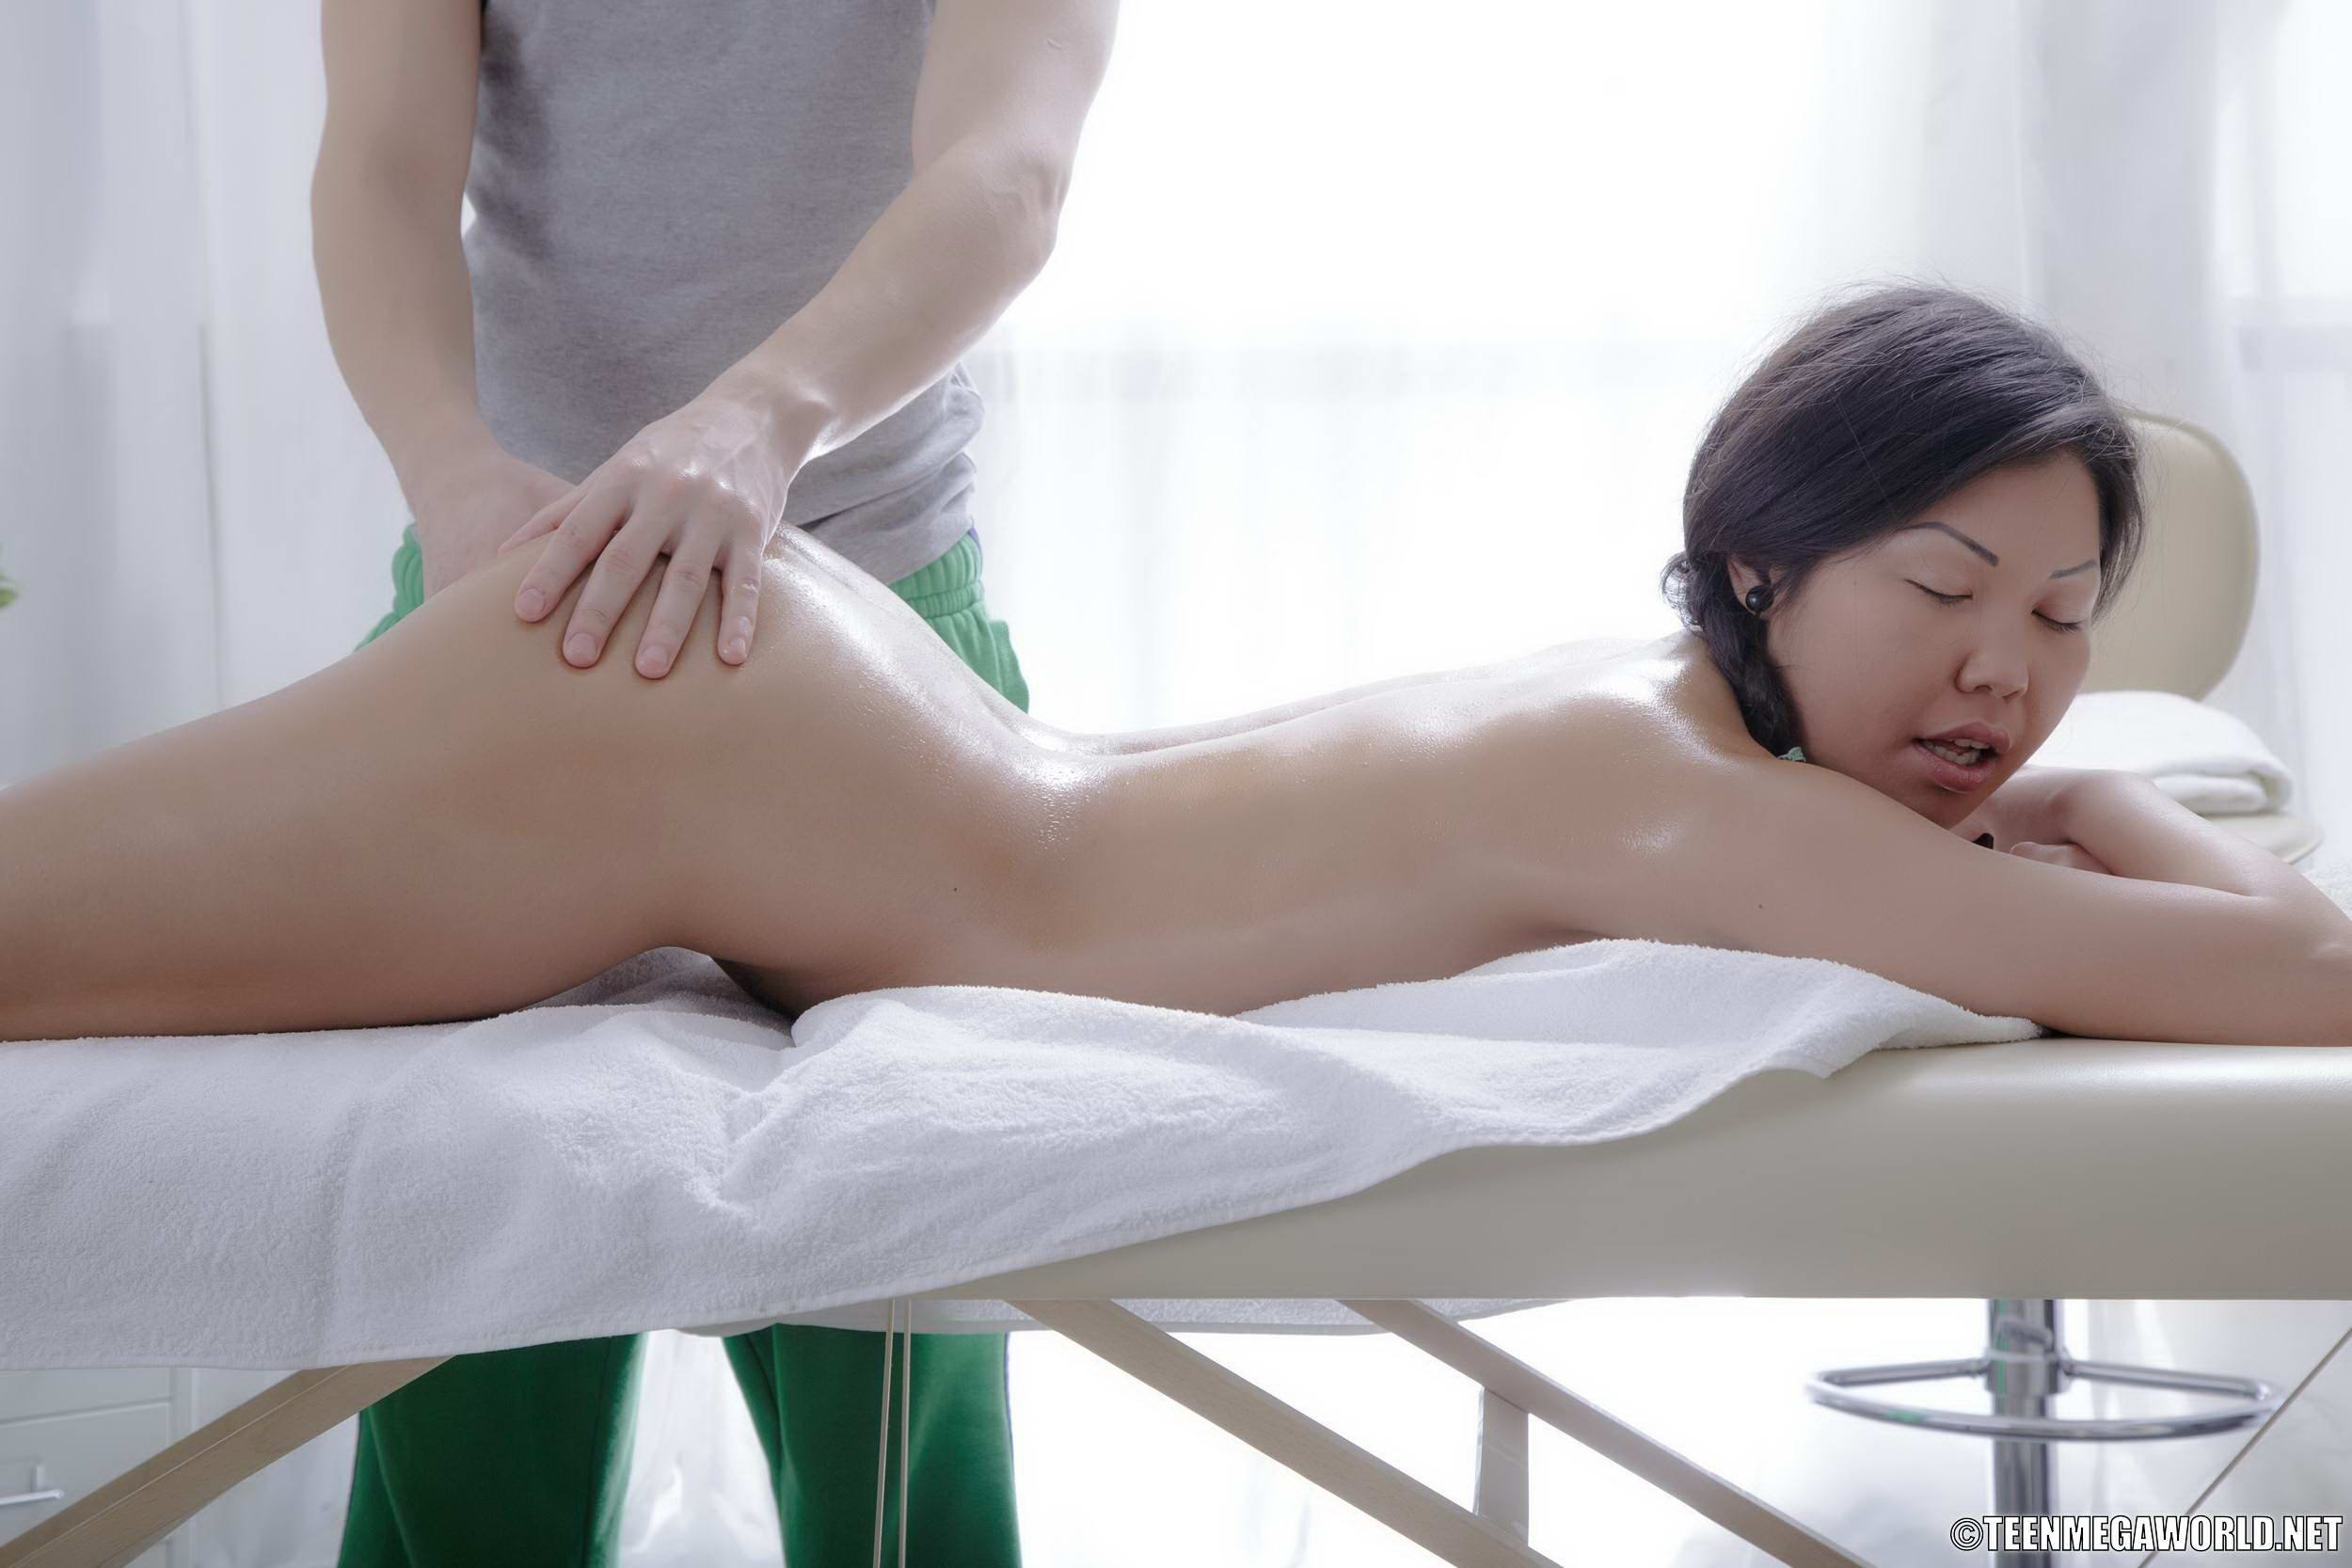 Painfully penitrated asian massage gallery free men naked penis